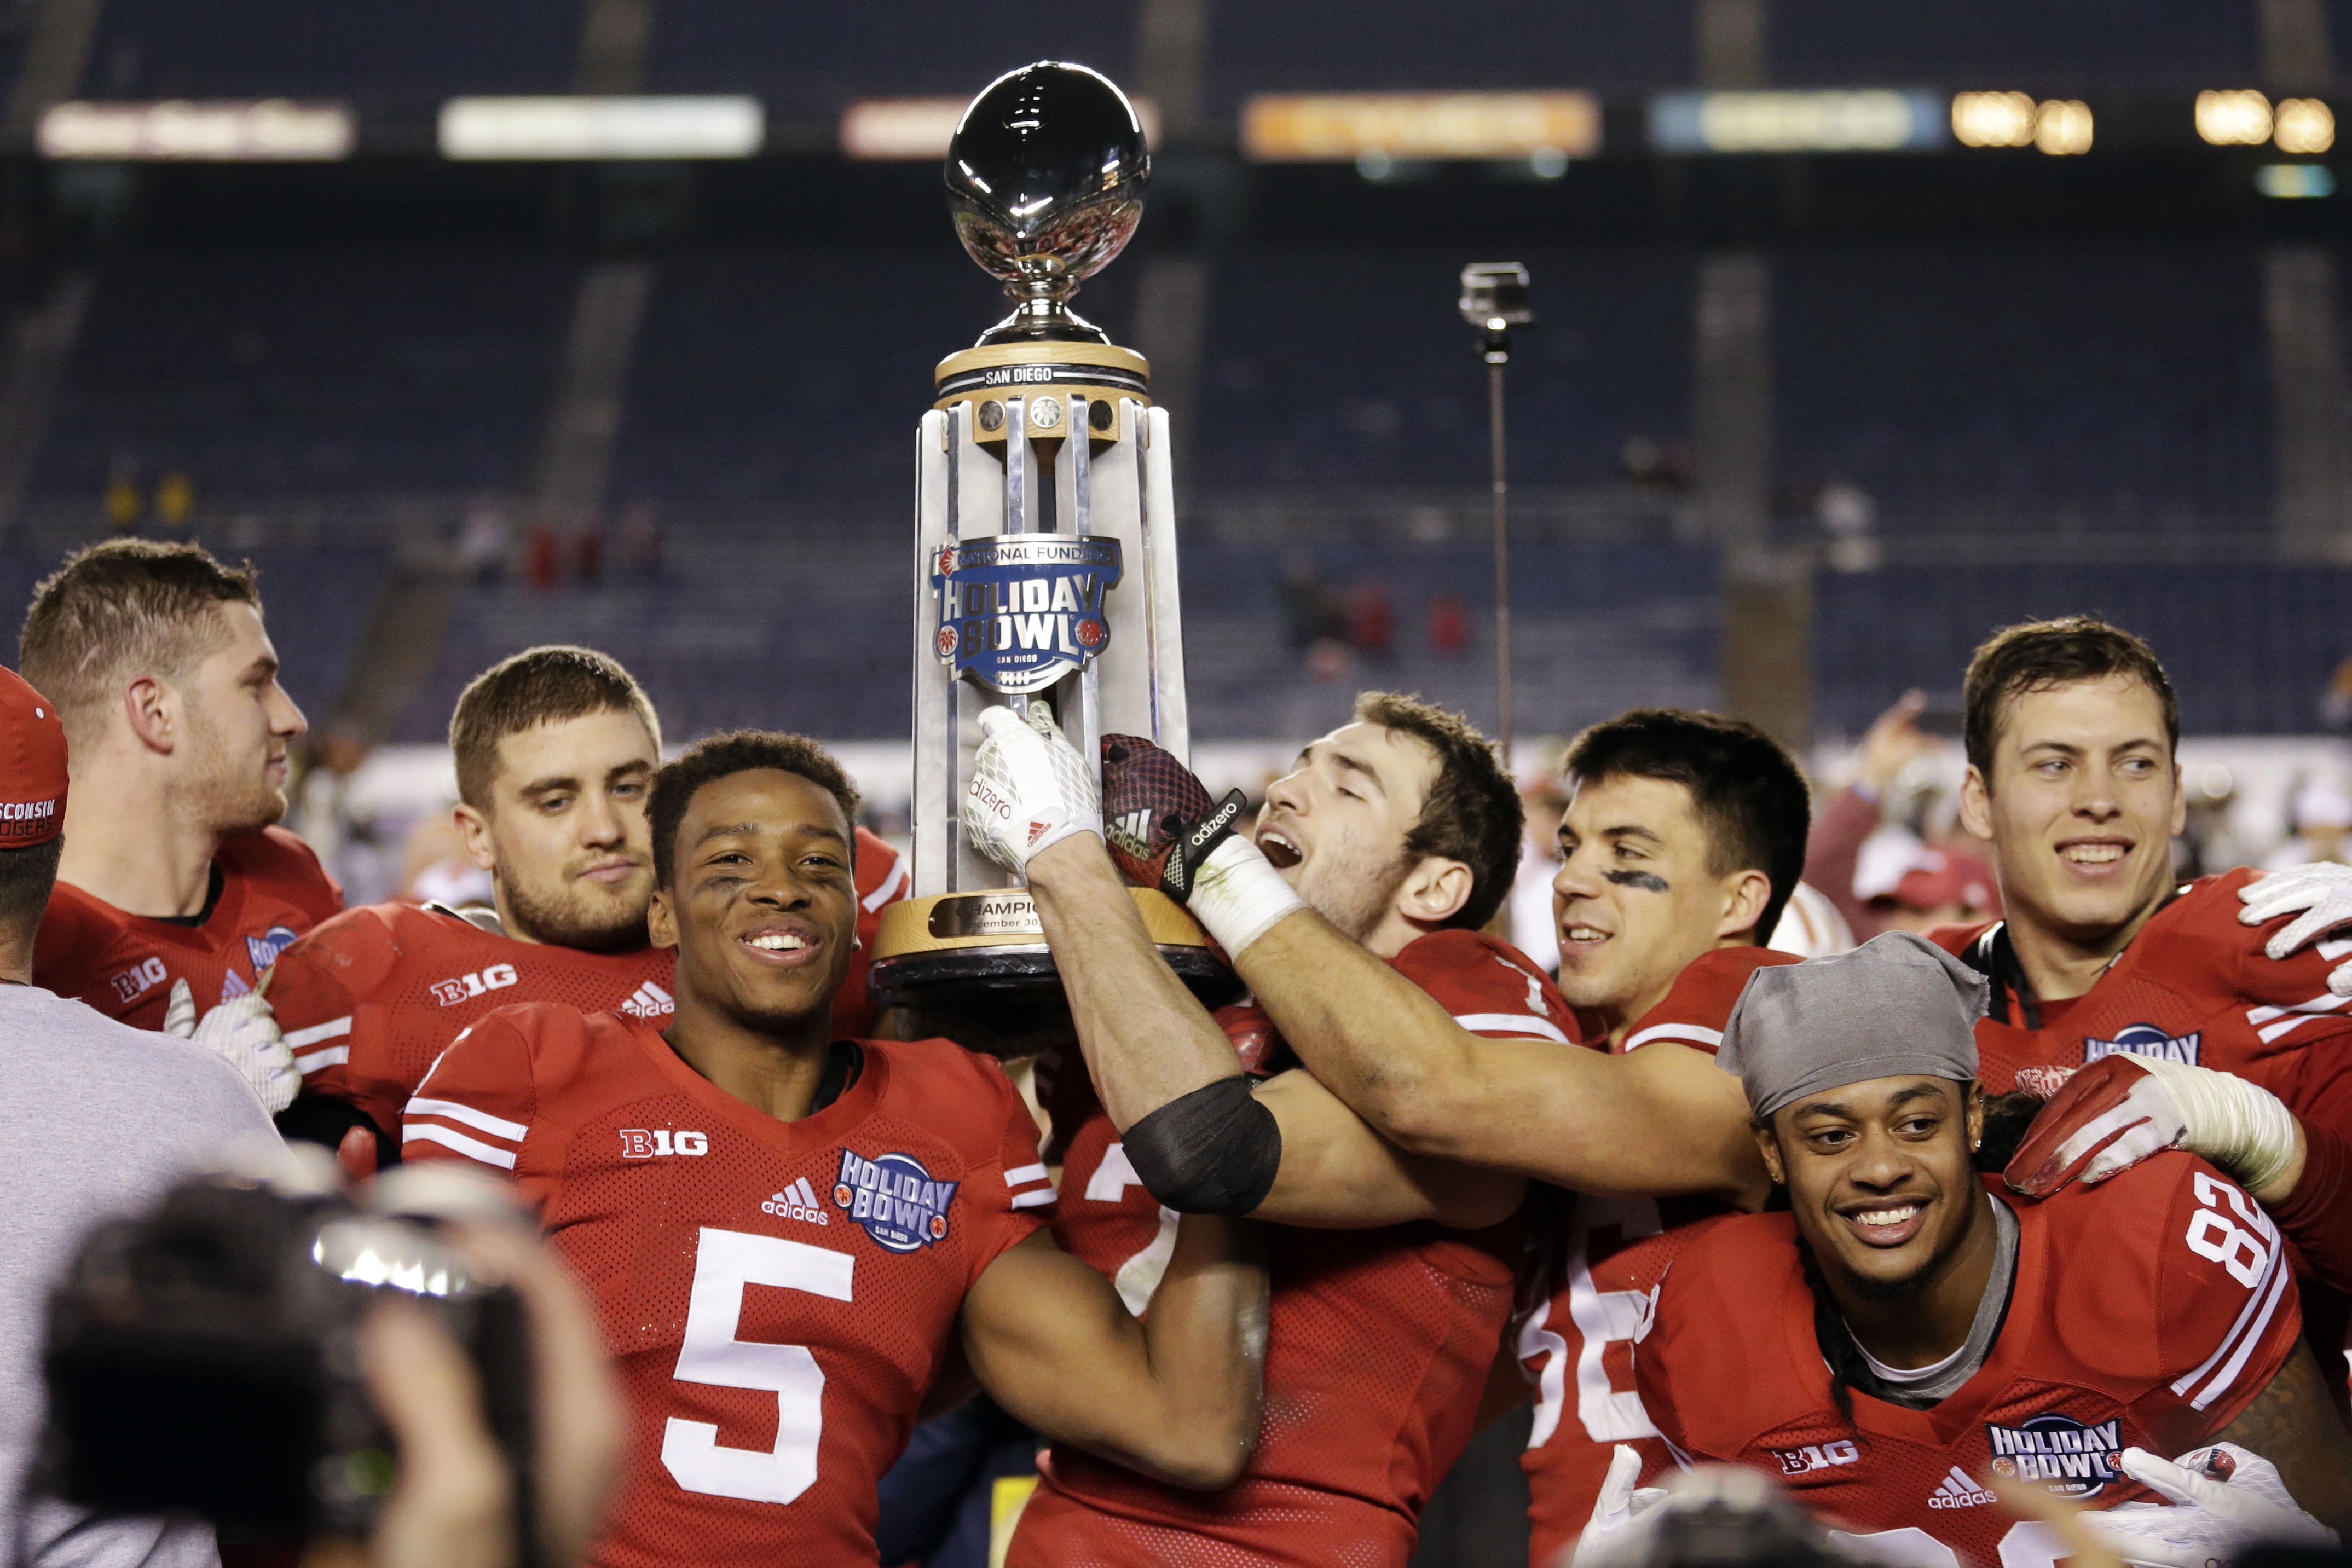 Wisconsin players hold the Holiday Bowl trophy after defeating Southern California in the Holiday Bowl NCAA college football game Wednesday, Dec. 30, 2015, in San Diego. Wisconsin won 23-21. (AP Photo/Gregory Bull)